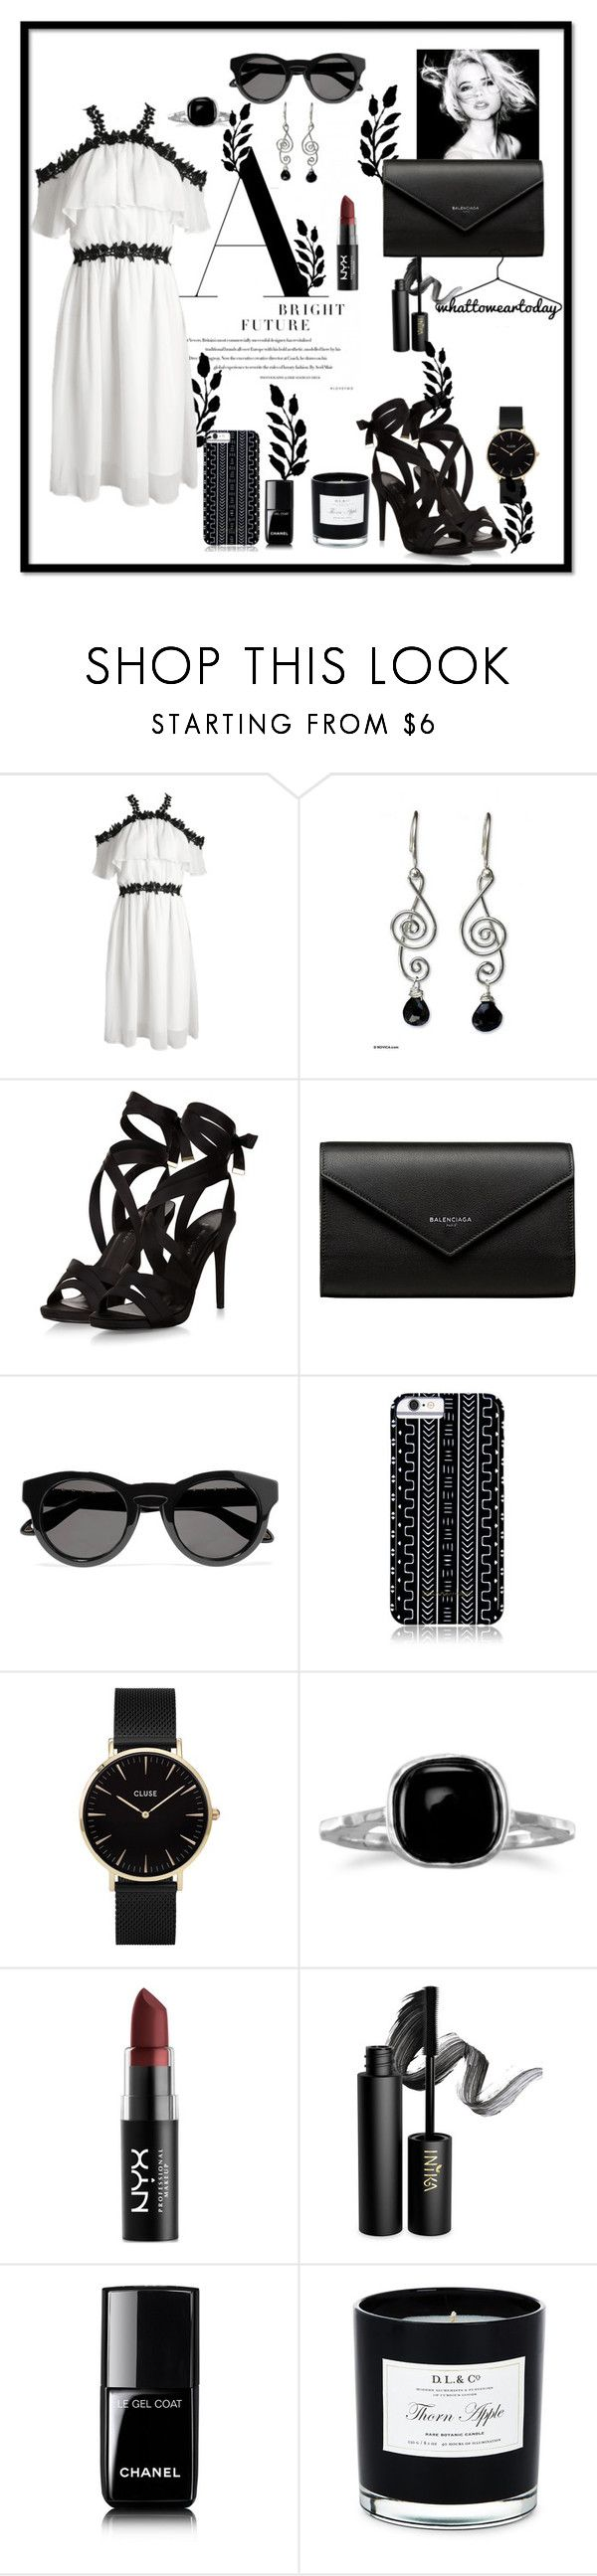 """""""Untitled #54"""" by thea0666 ❤ liked on Polyvore featuring NOVICA, Balenciaga, Givenchy, Savannah Hayes, CLUSE, BillyTheTree, NYX, INIKA, Chanel and D.L. & Co."""